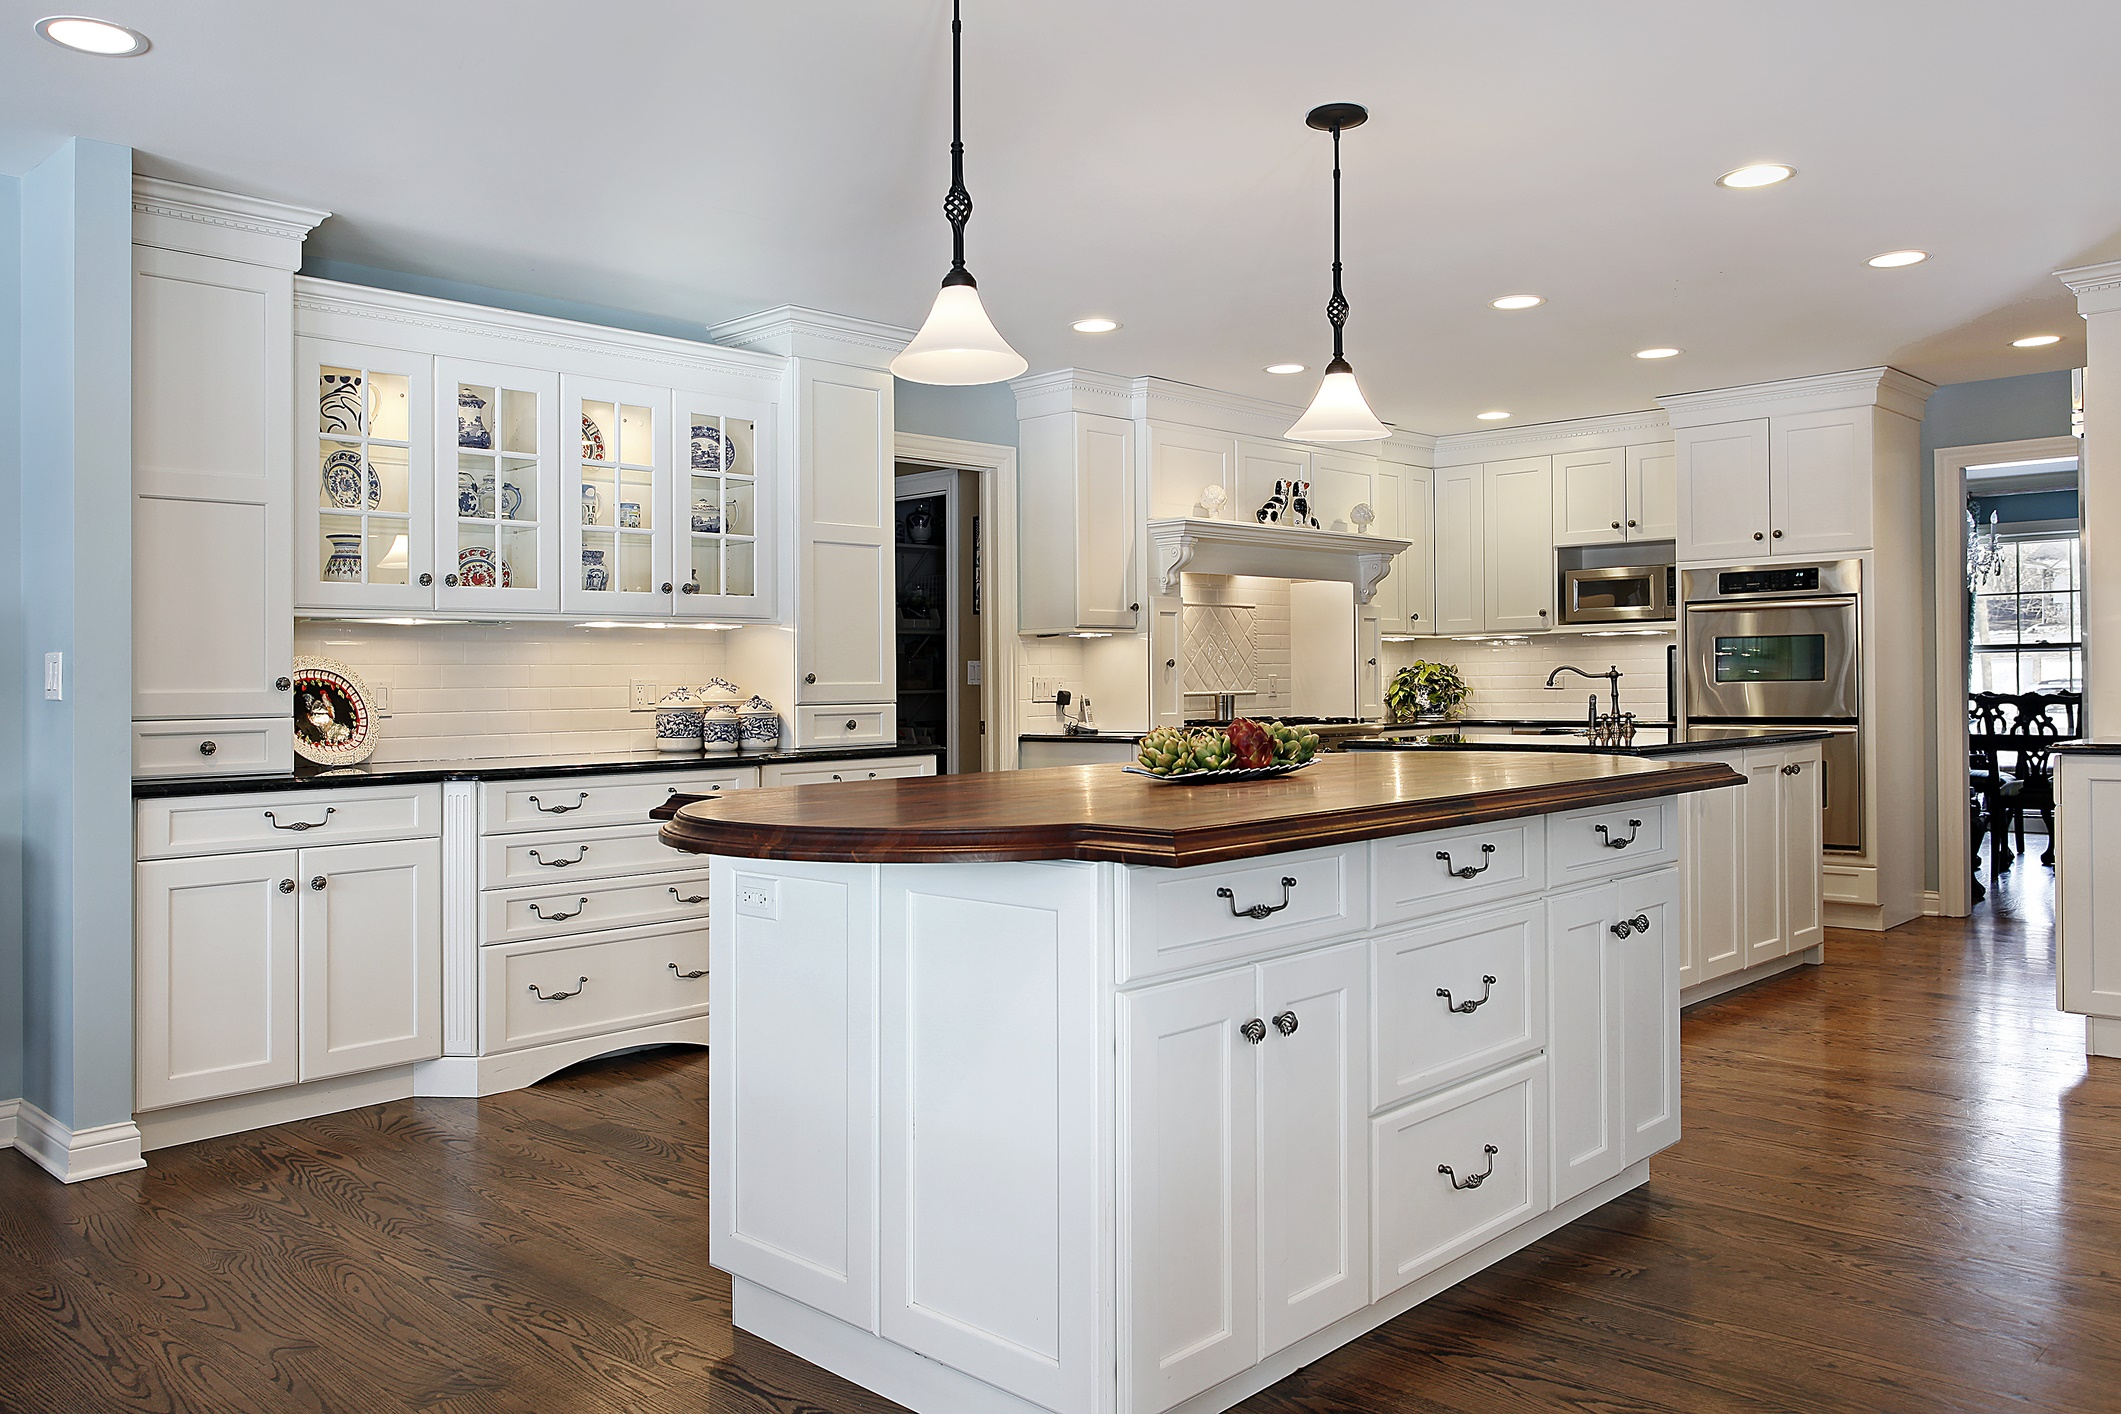 Marvelous Kitchen Remodeling Bradenton Fl #7: Kitchen Remodeling And Bathroom Remodeling Experts Serving Bradenton,  Sarasota And Surrounding Cities.